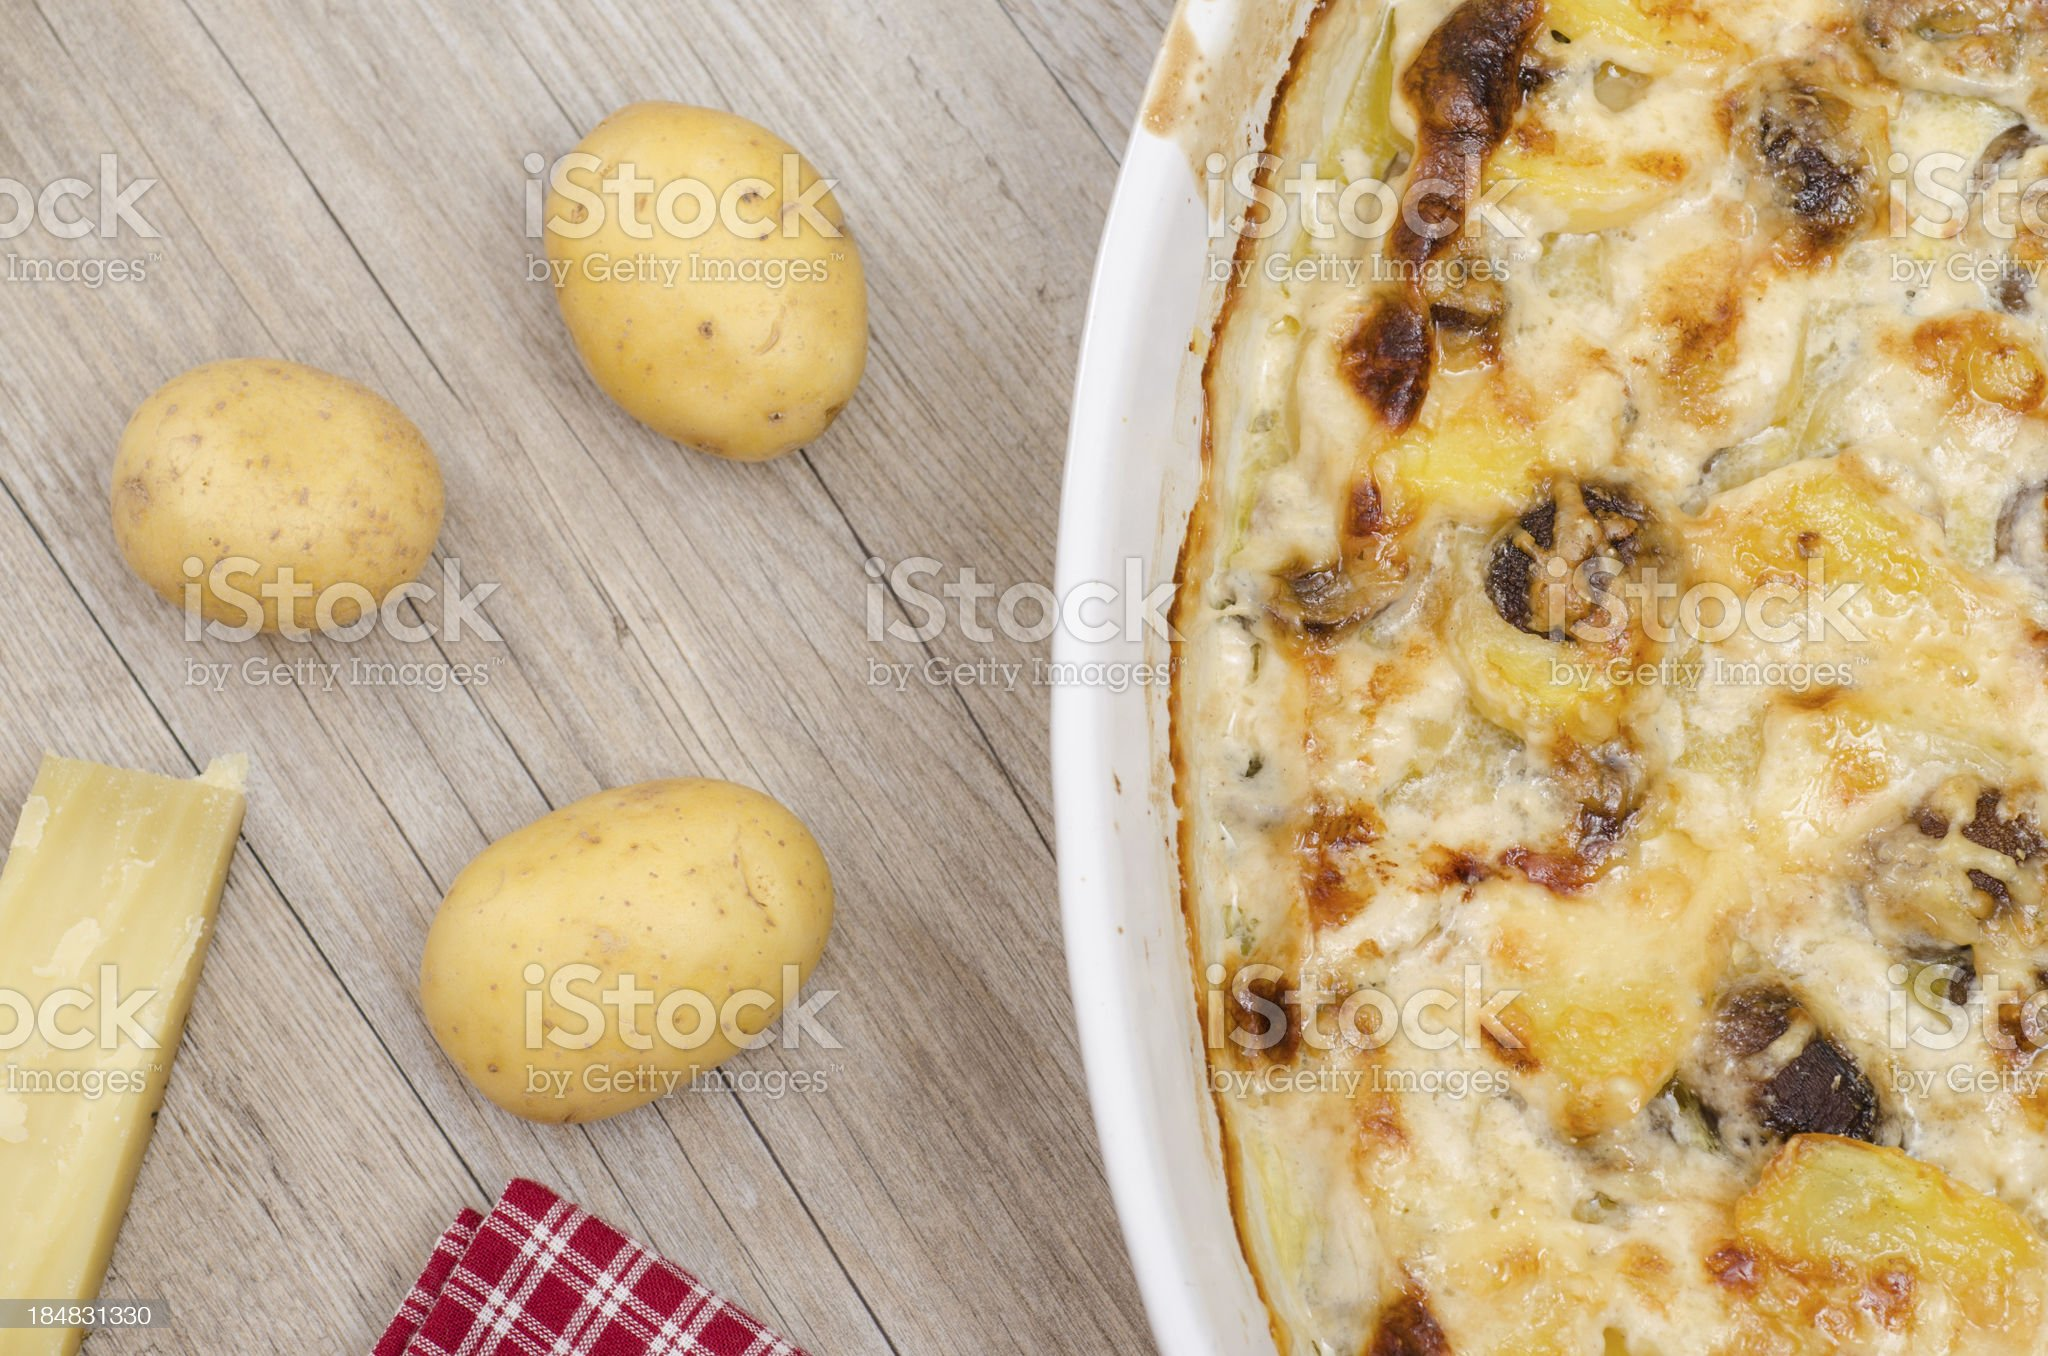 Gratin with potatoes and cheese royalty-free stock photo